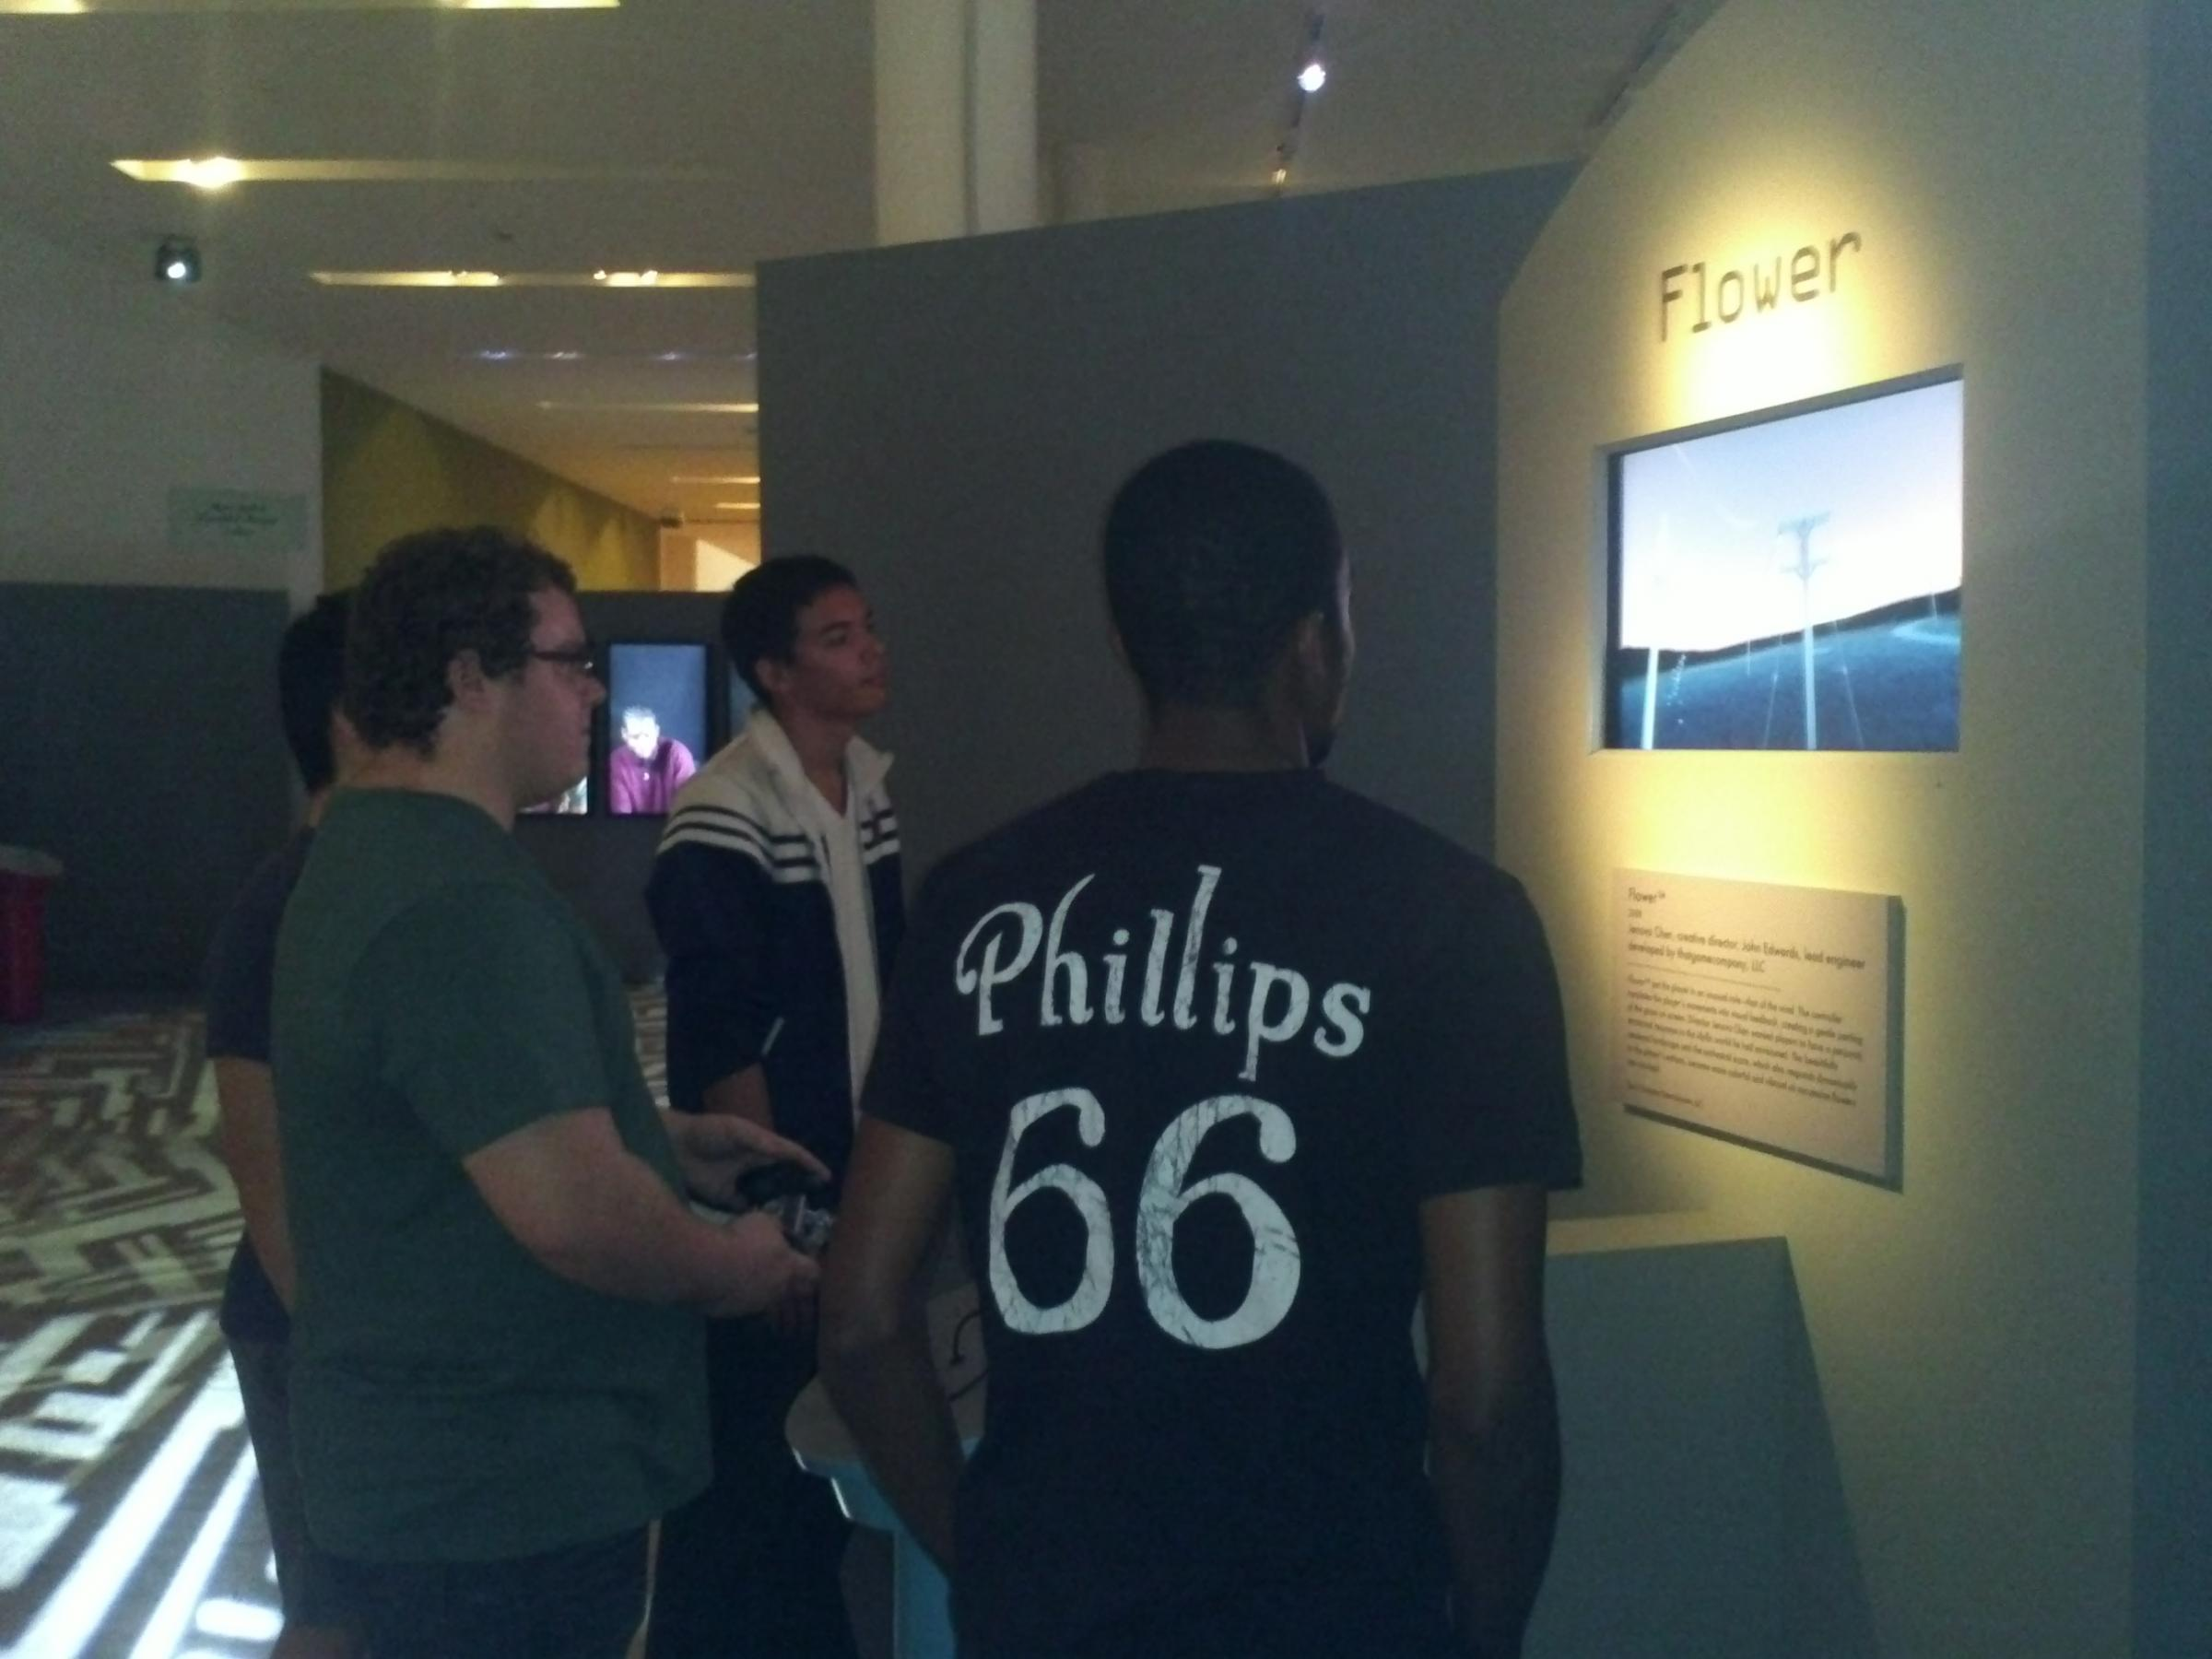 20 Year Old Jean Lapaix And His Friends Visited The Art Of Video Games Exhibit At Boca Raton Museum